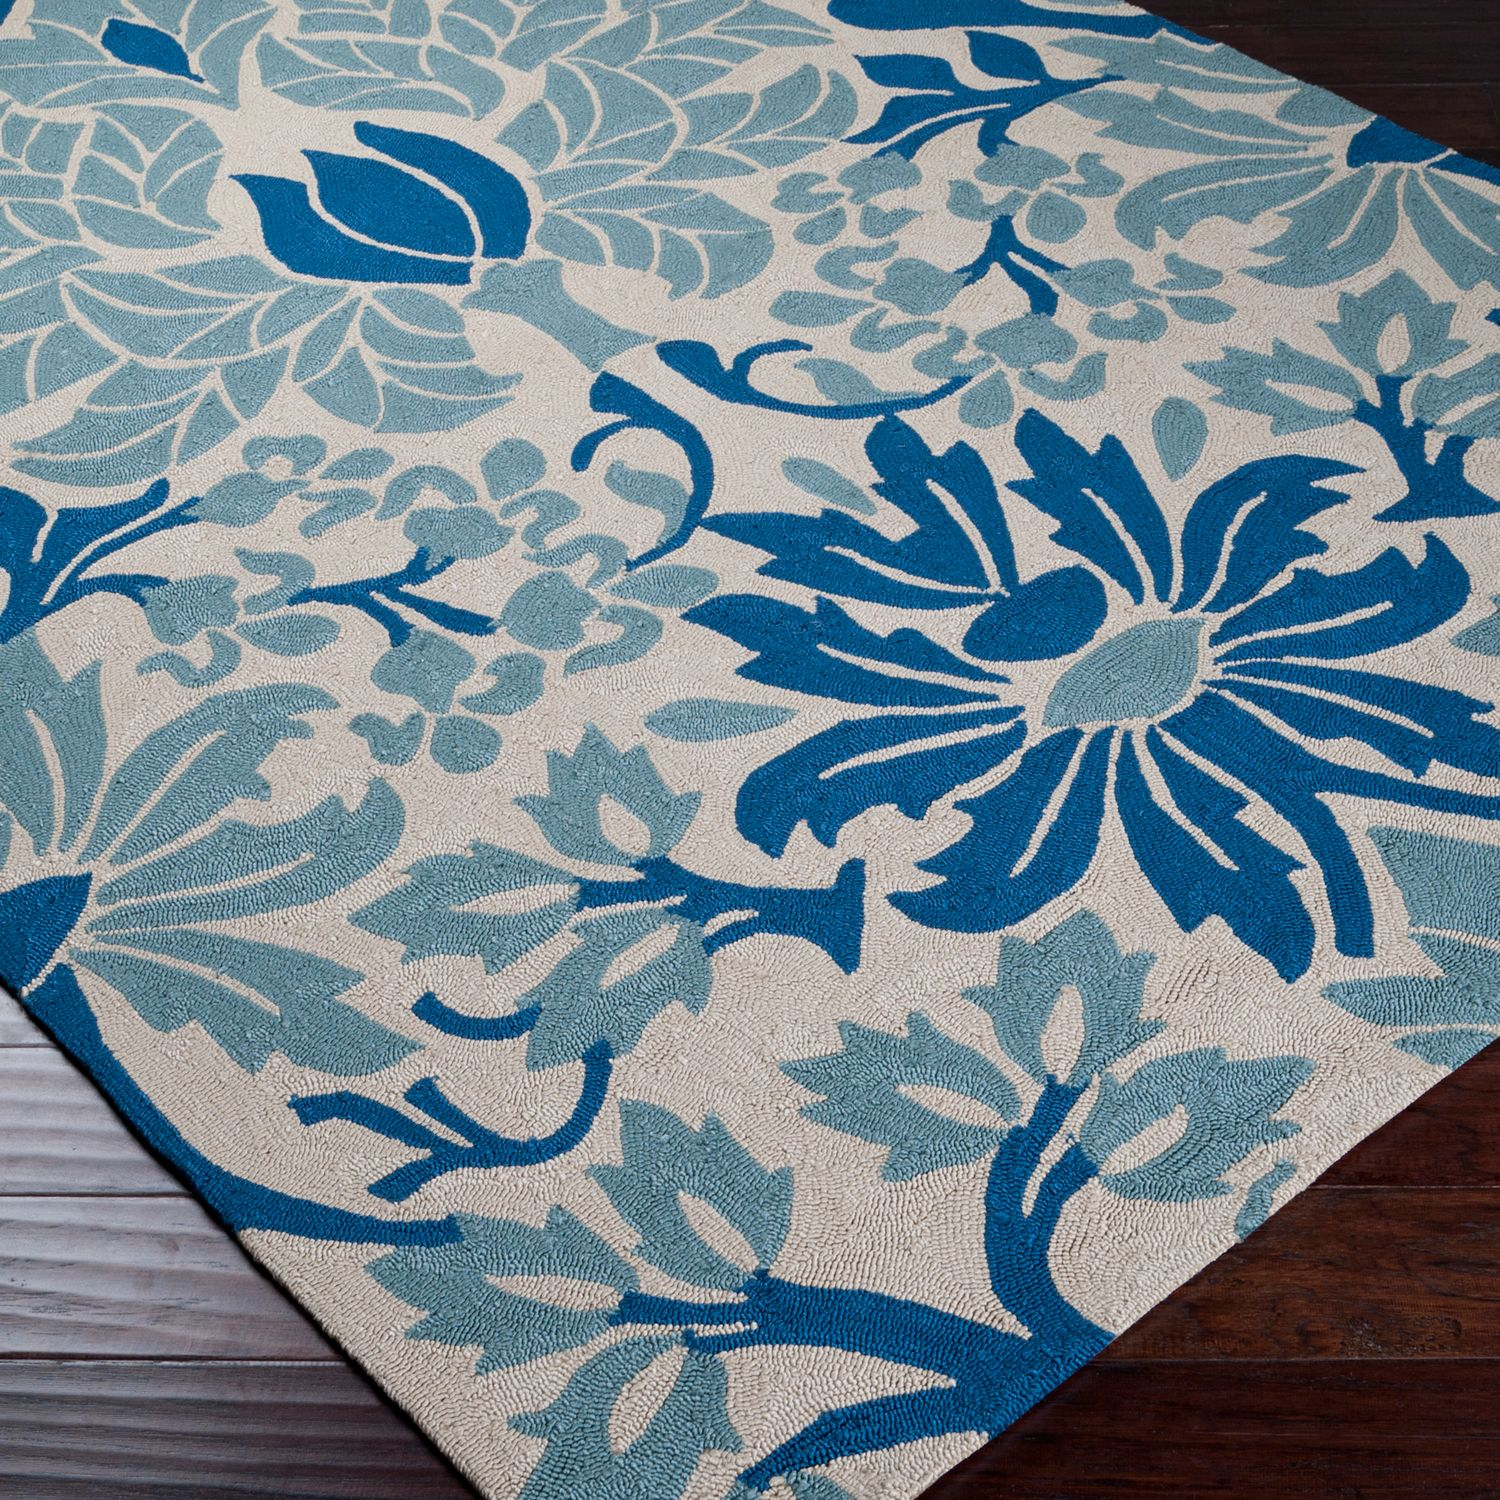 Homefires Indoor Outdoor Hooked Turquoise White Indoor: Surya Rain Royal Blue Hand Hooked Rug @Layla Grayce